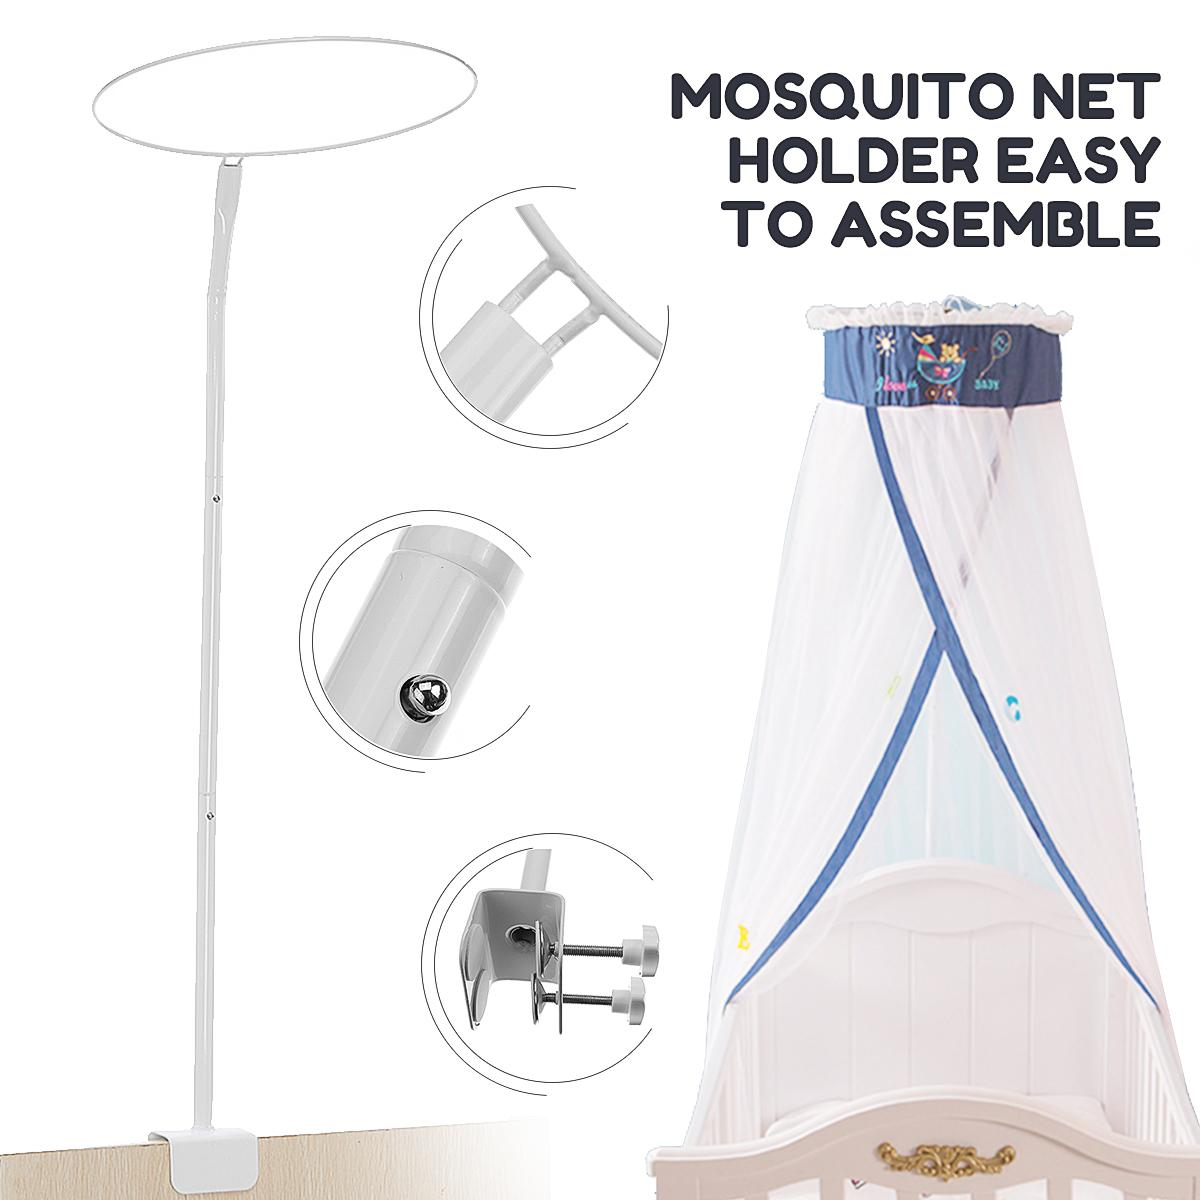 Universal Summer Mosquito Net Stand Crib Net Holder Baby Crib Mosquito Netting Holder Canopy Drape Holder Bed Support